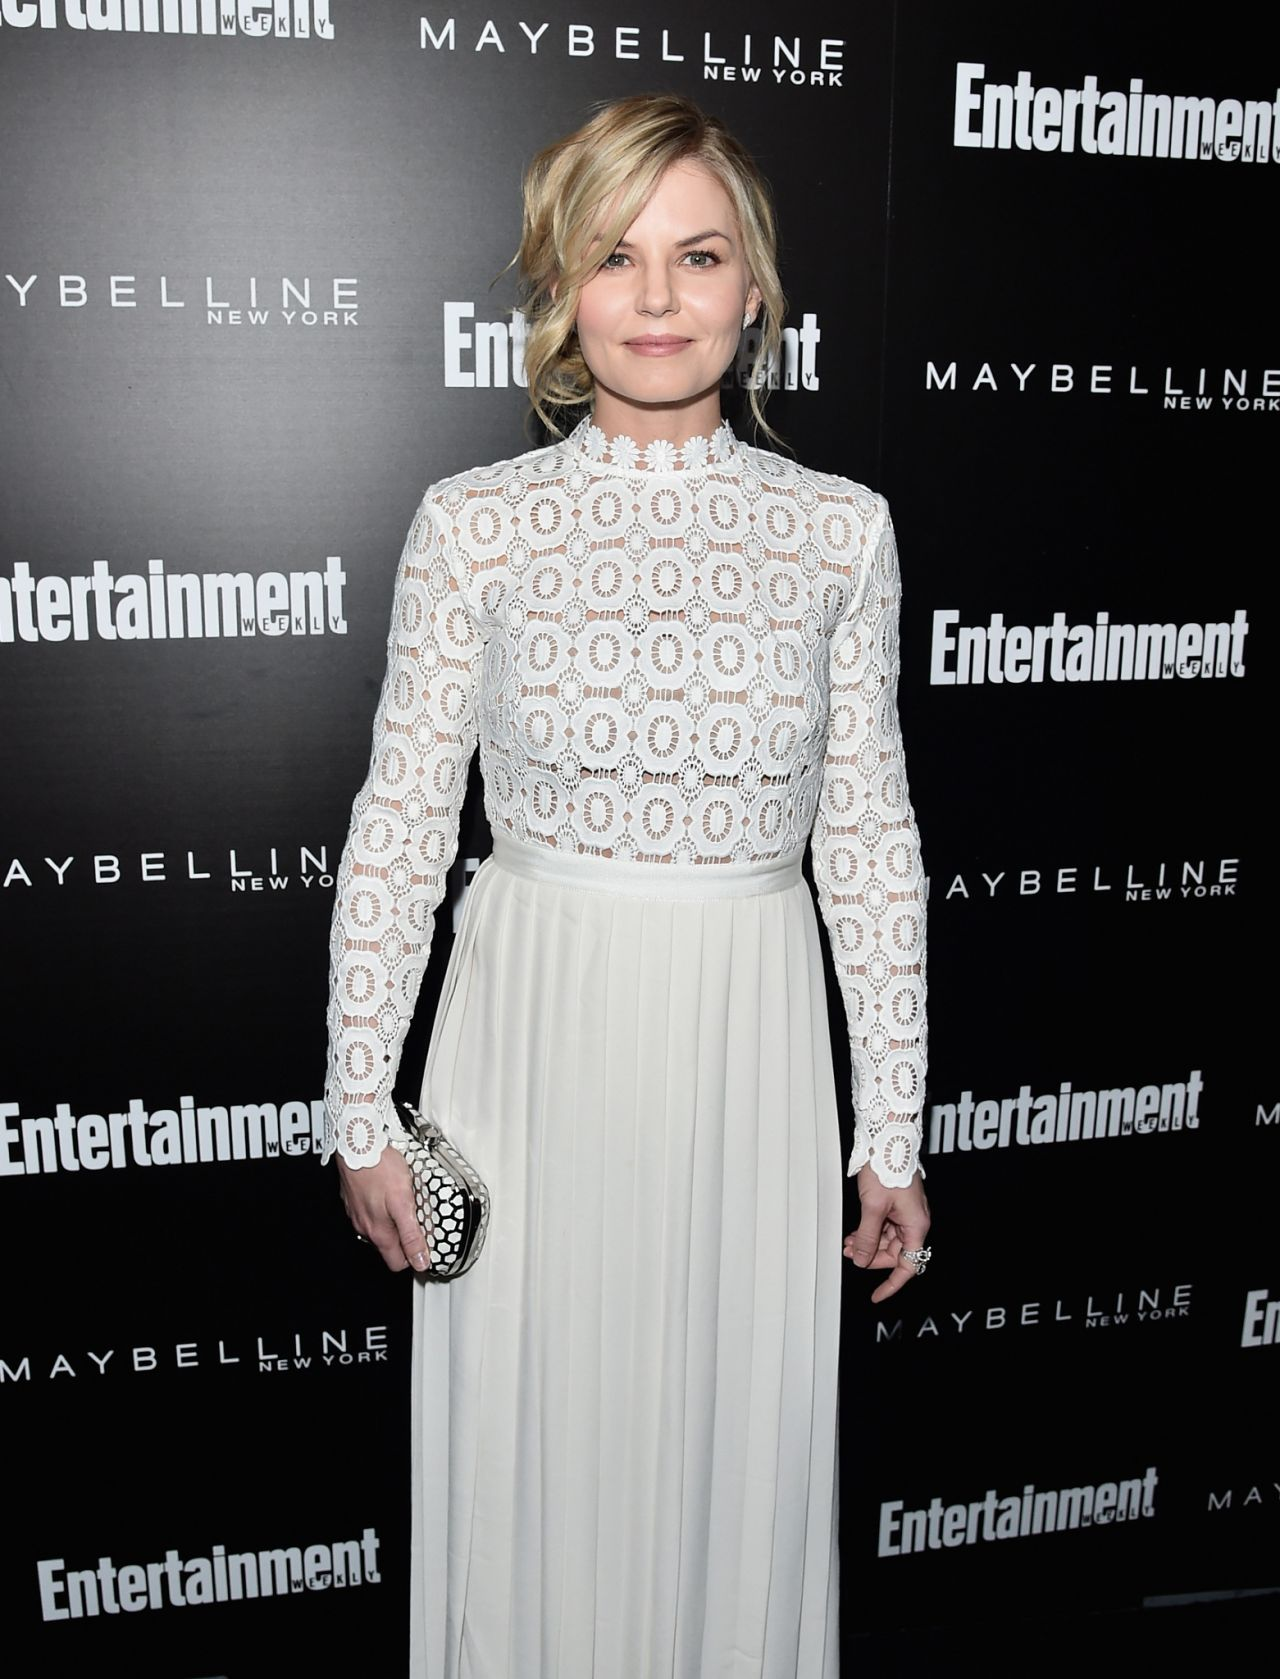 jennifer-morrison-2016-entertainment-weekly-party-for-sag-awards-nominees-in-los-angeles-5